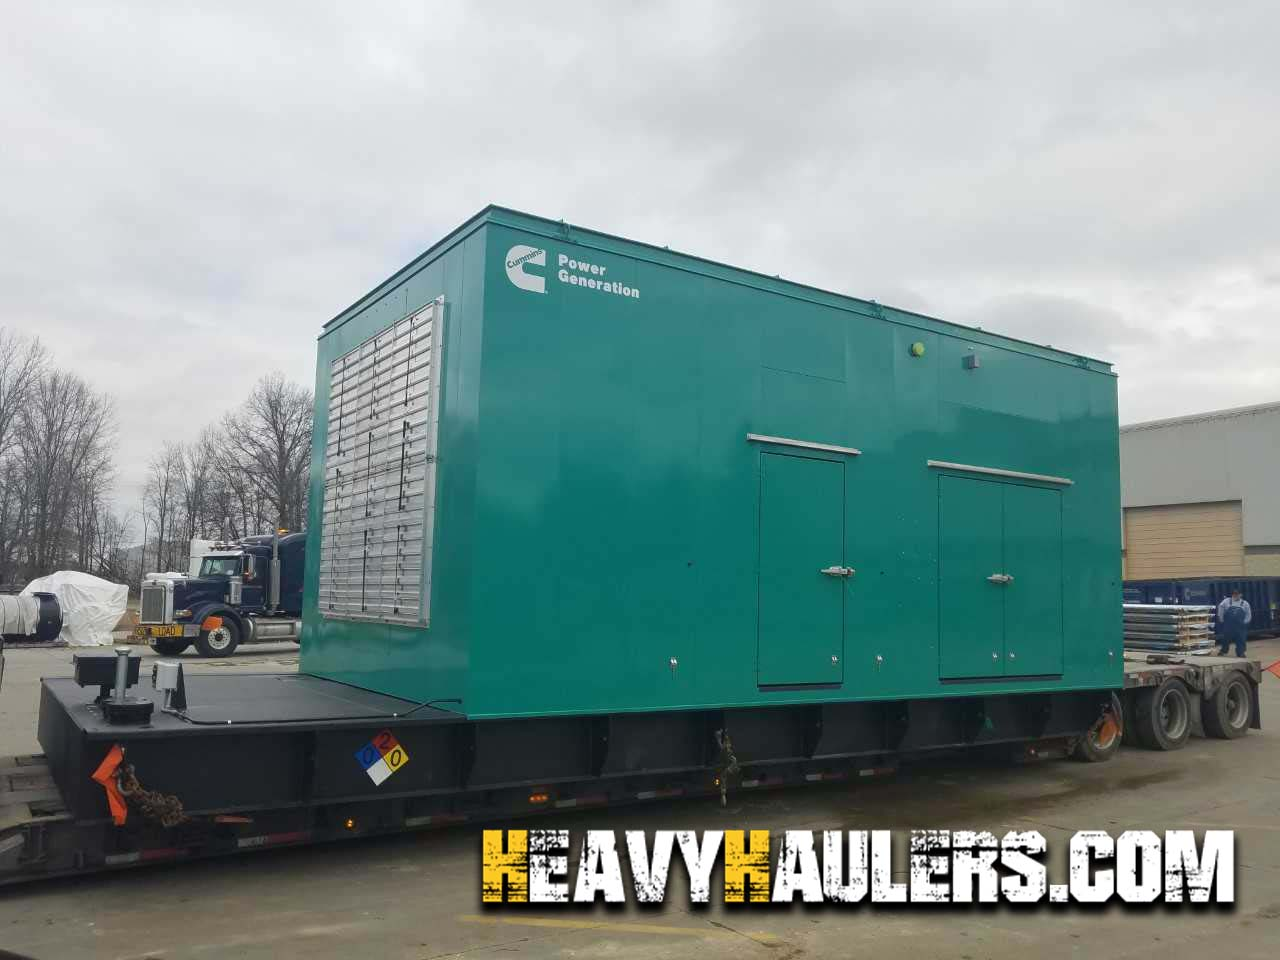 shipping a generator with heavy haulers